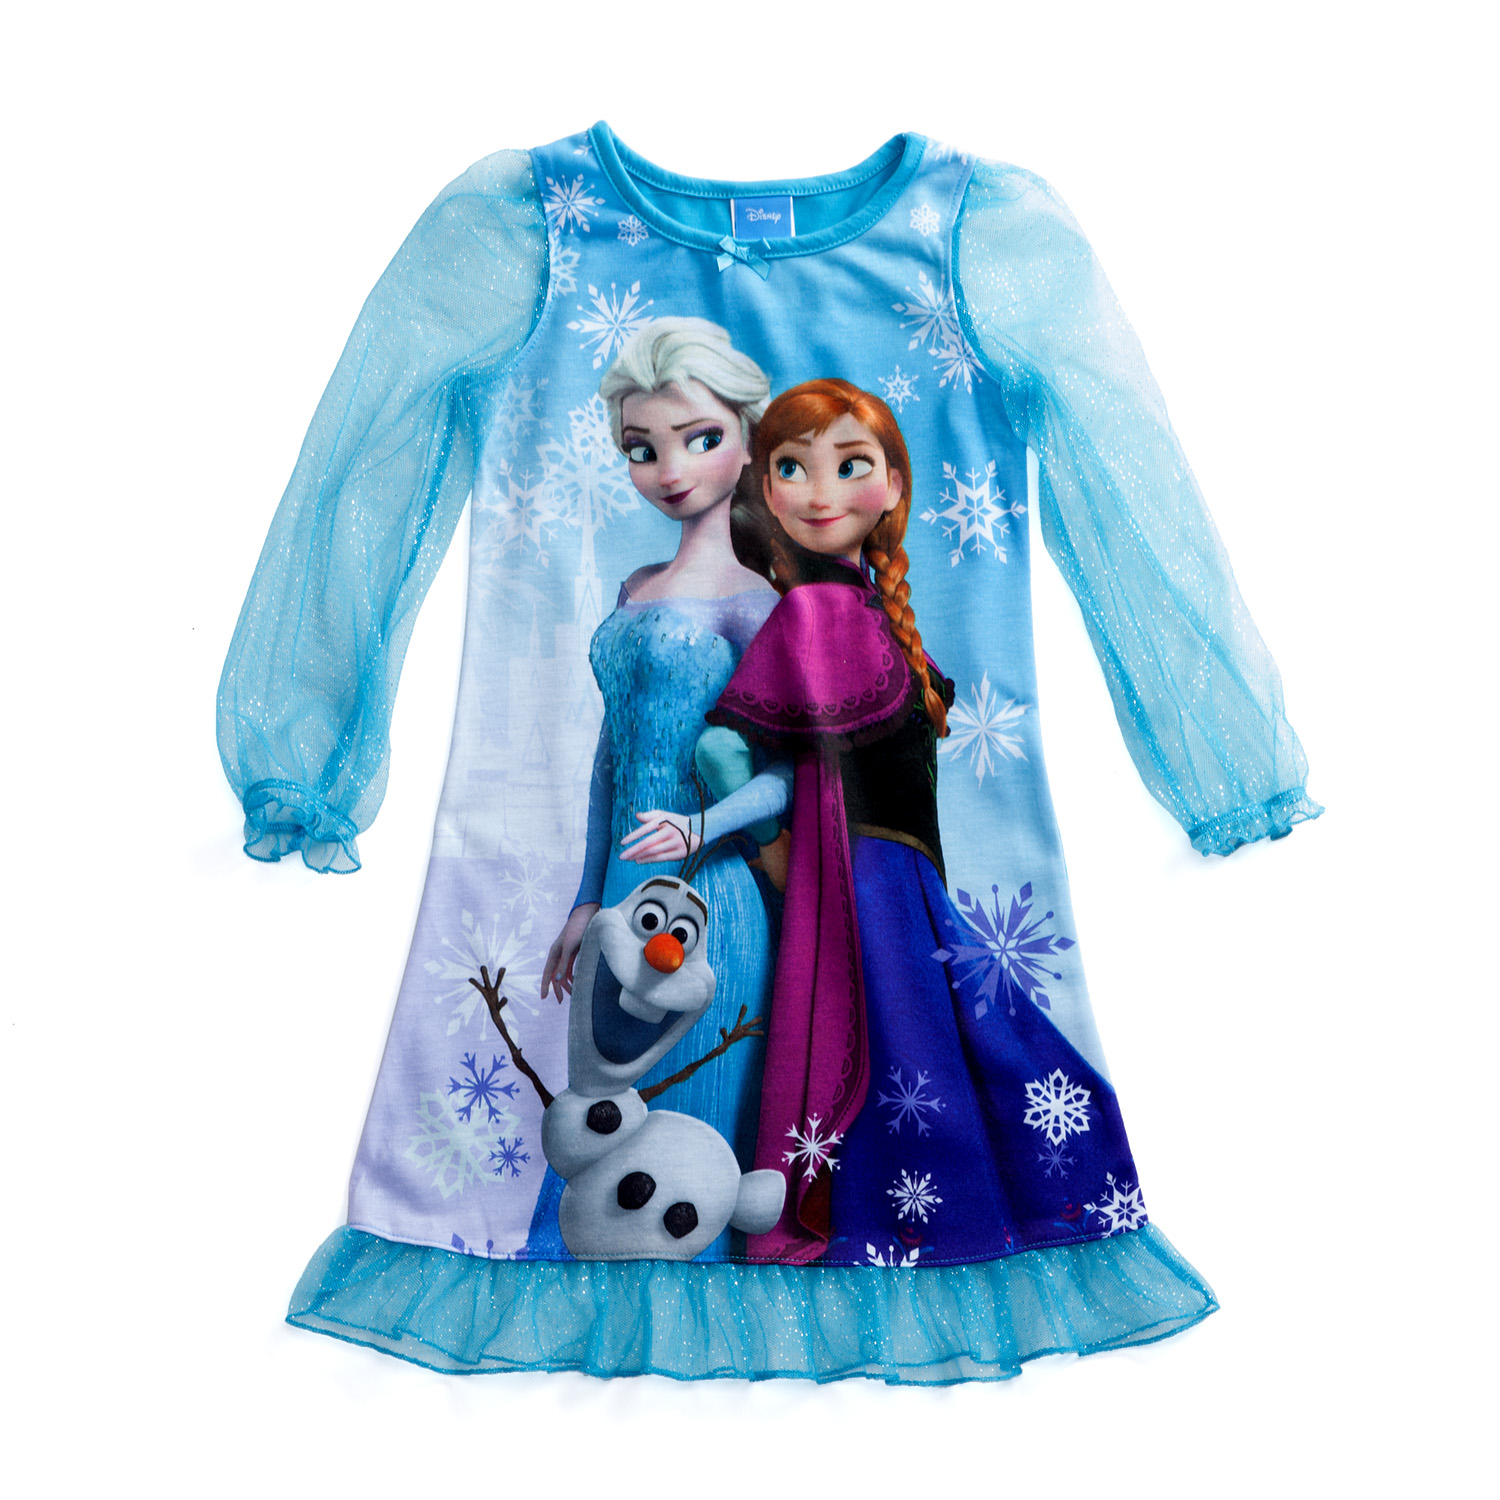 Disney Frozen Sisters and Olaf Blue Pajama Gown